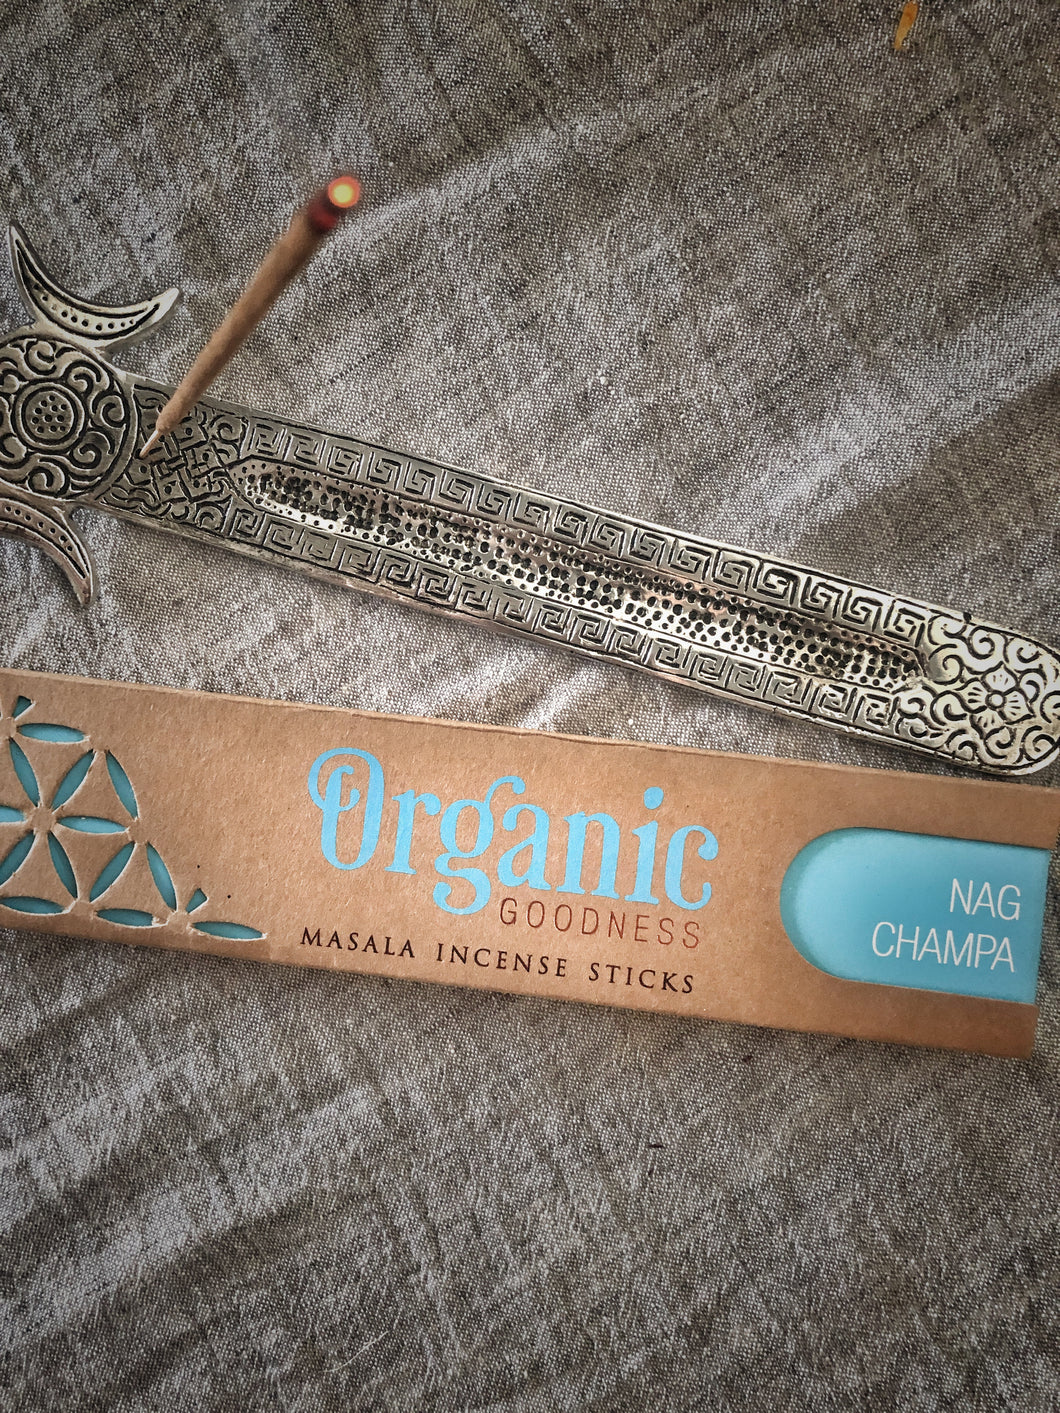 Organic Goodness- Nag Champa Incense Sticks